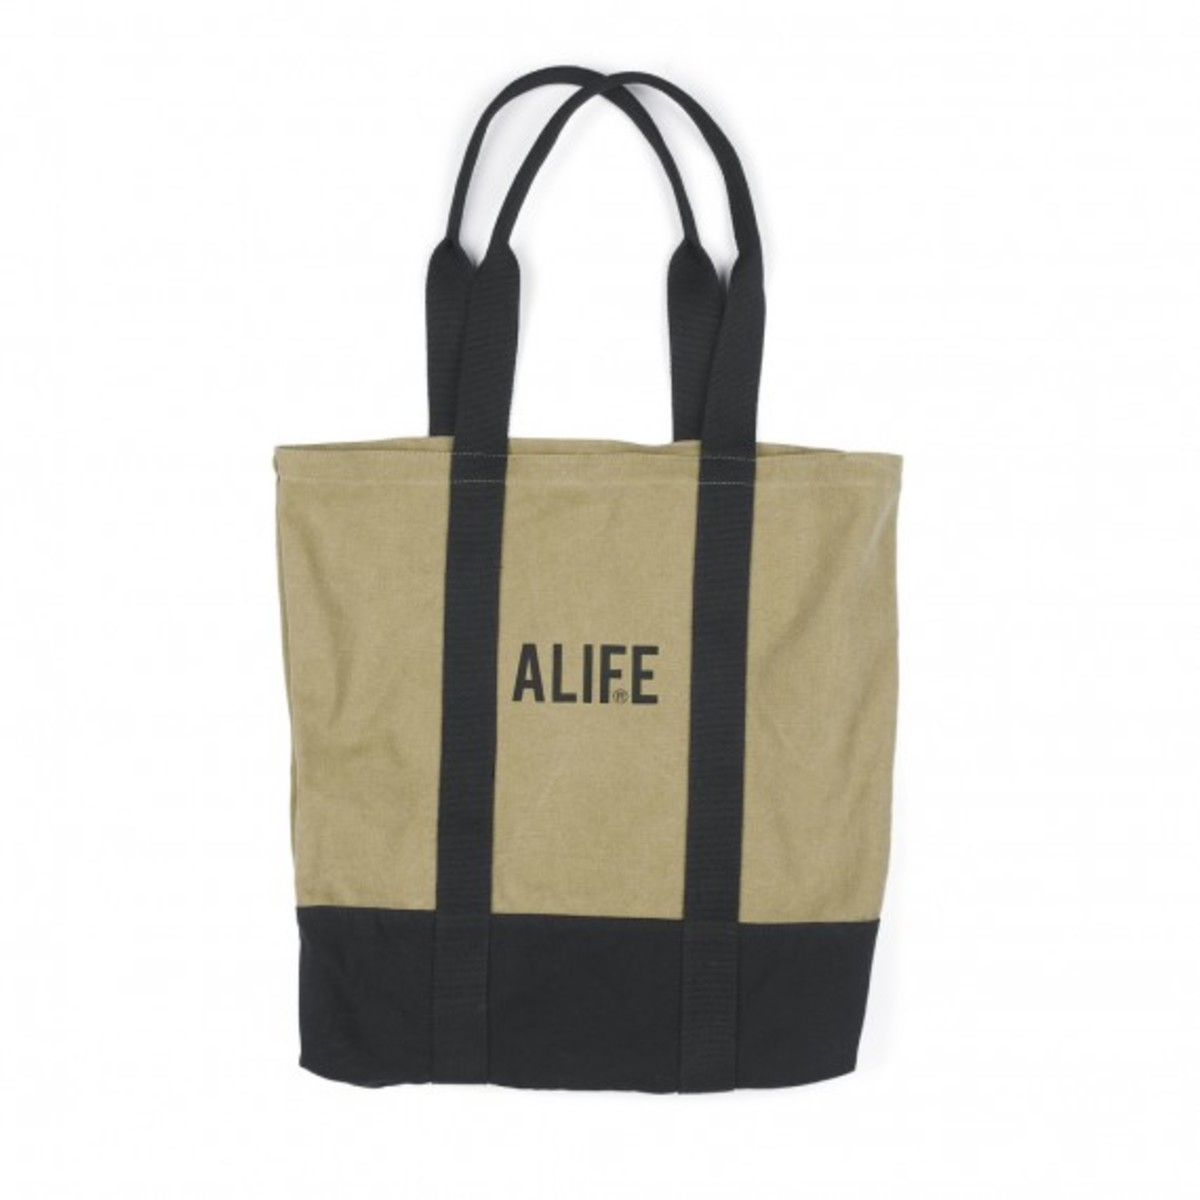 alife-tshirts-accessories-fall-2011-46